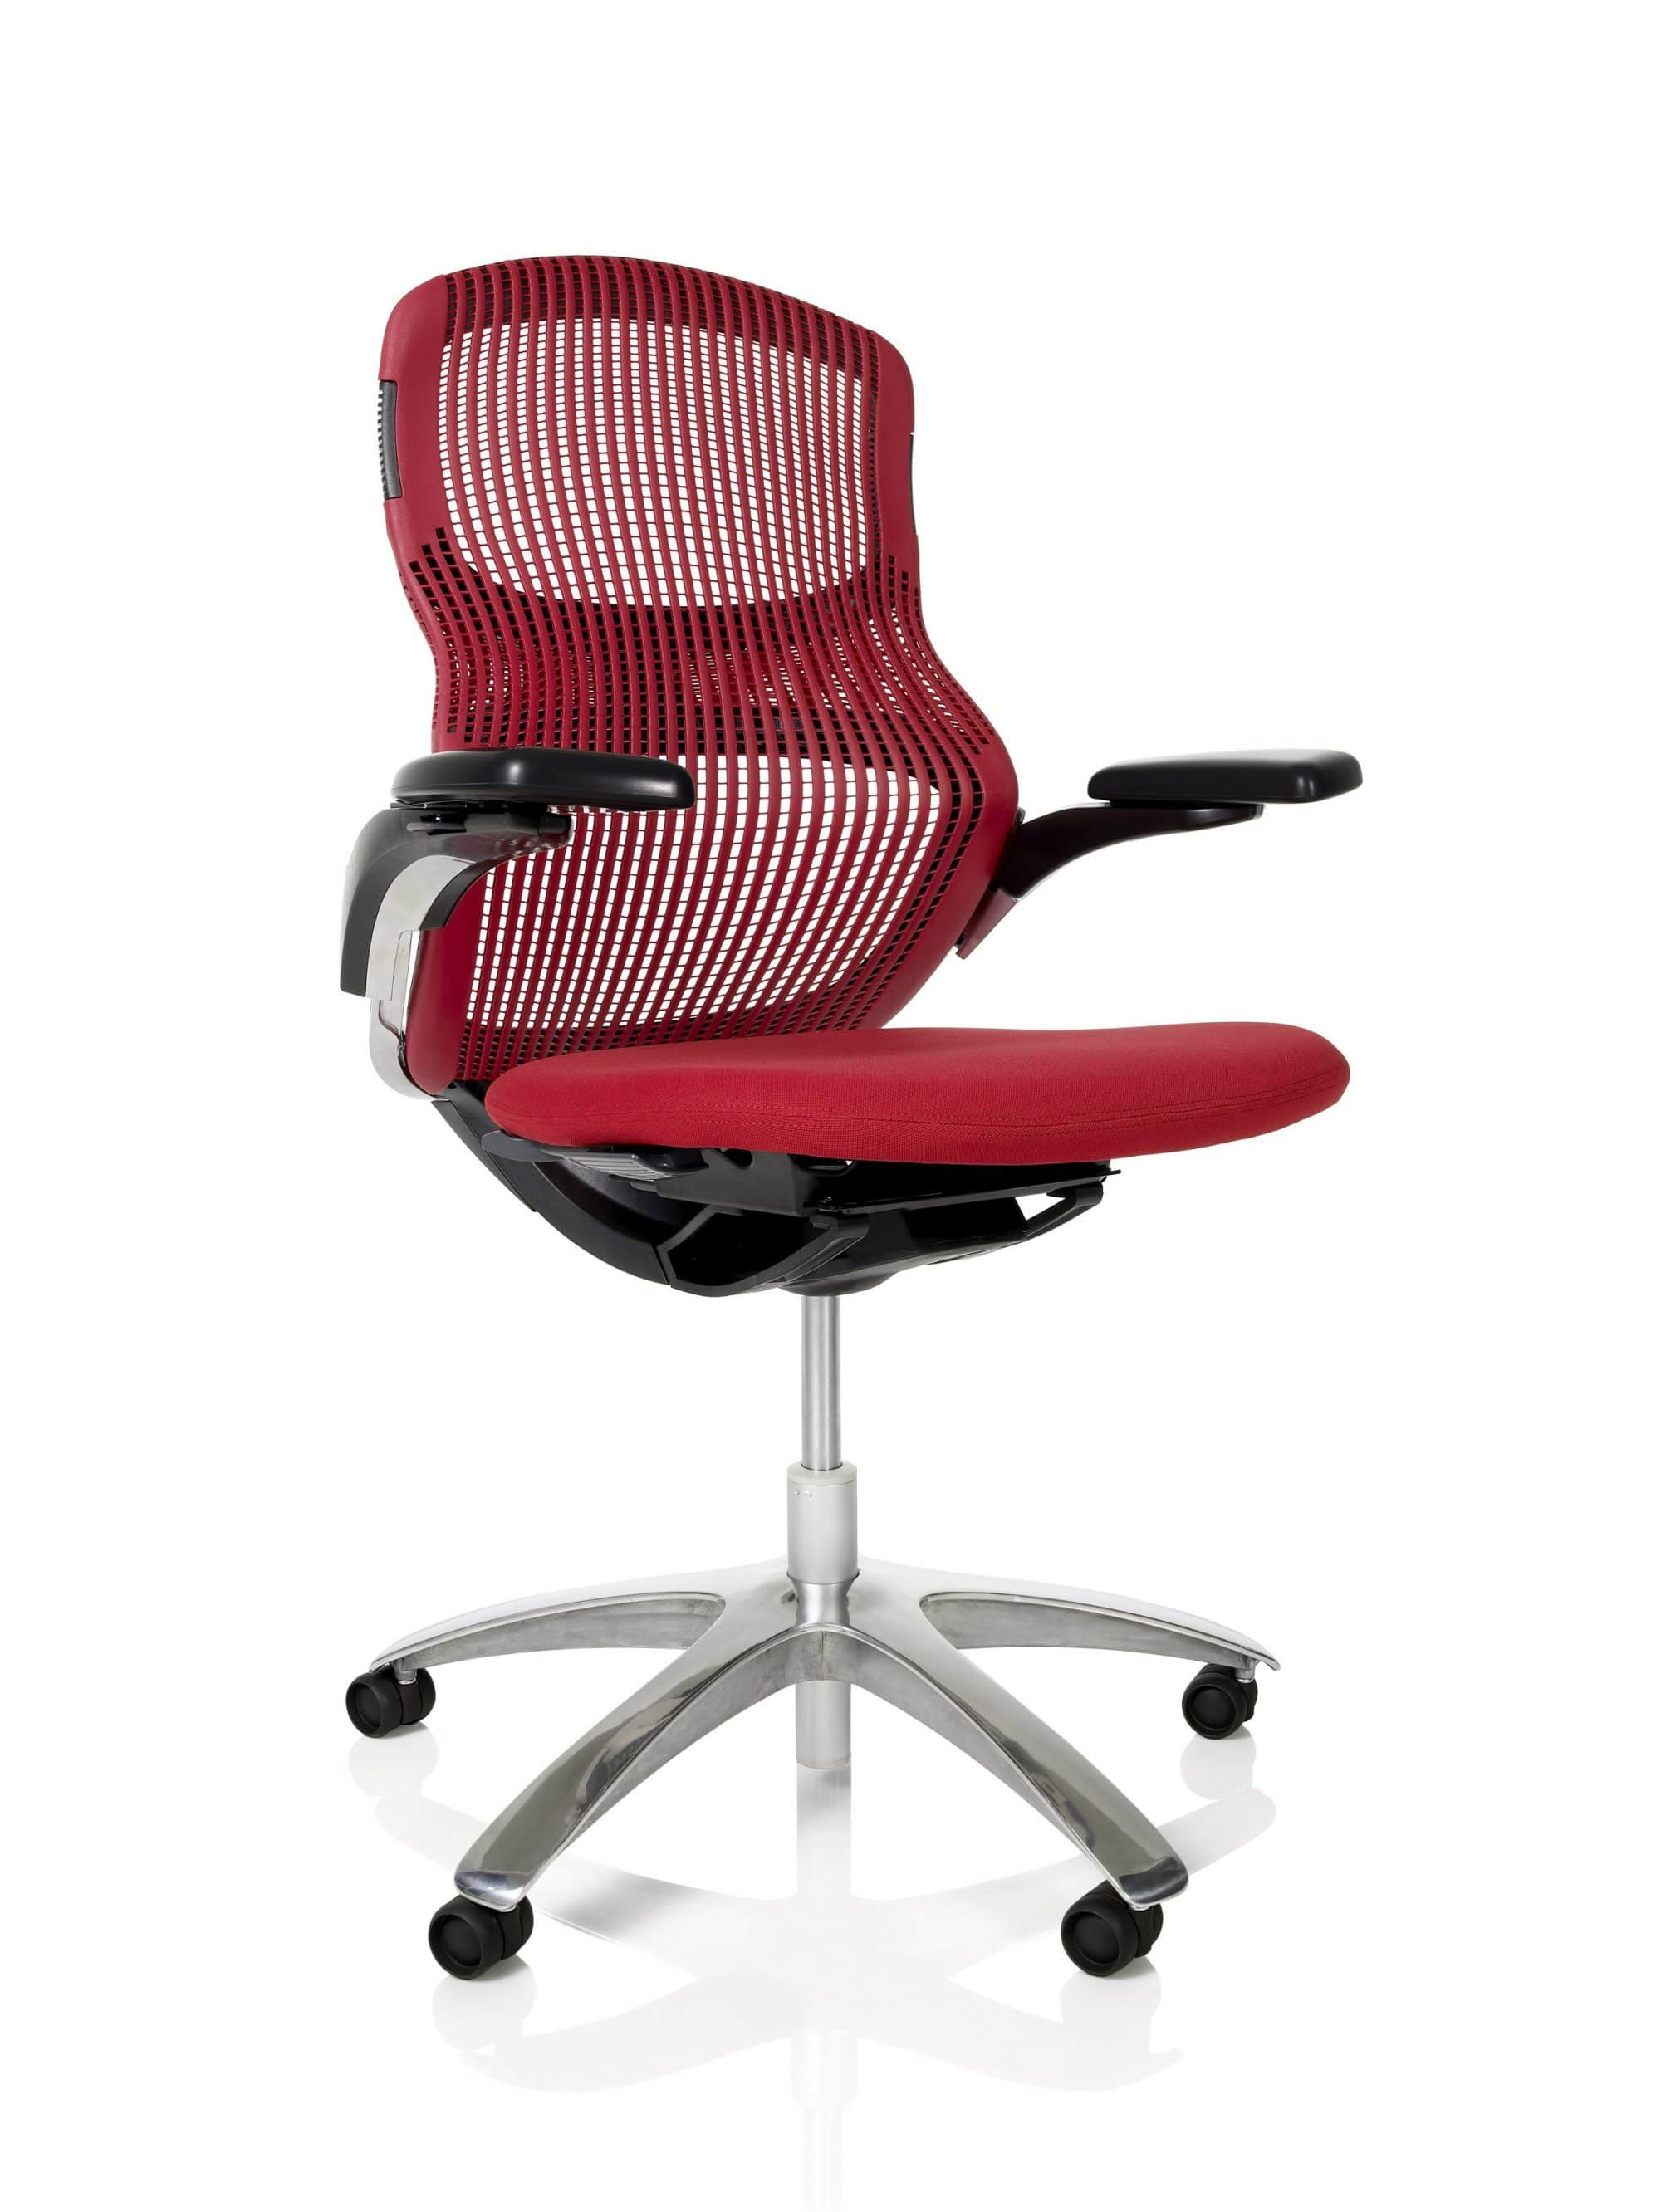 knoll generation task chair sling spring patio chairs focused on employee well being  systems furniture